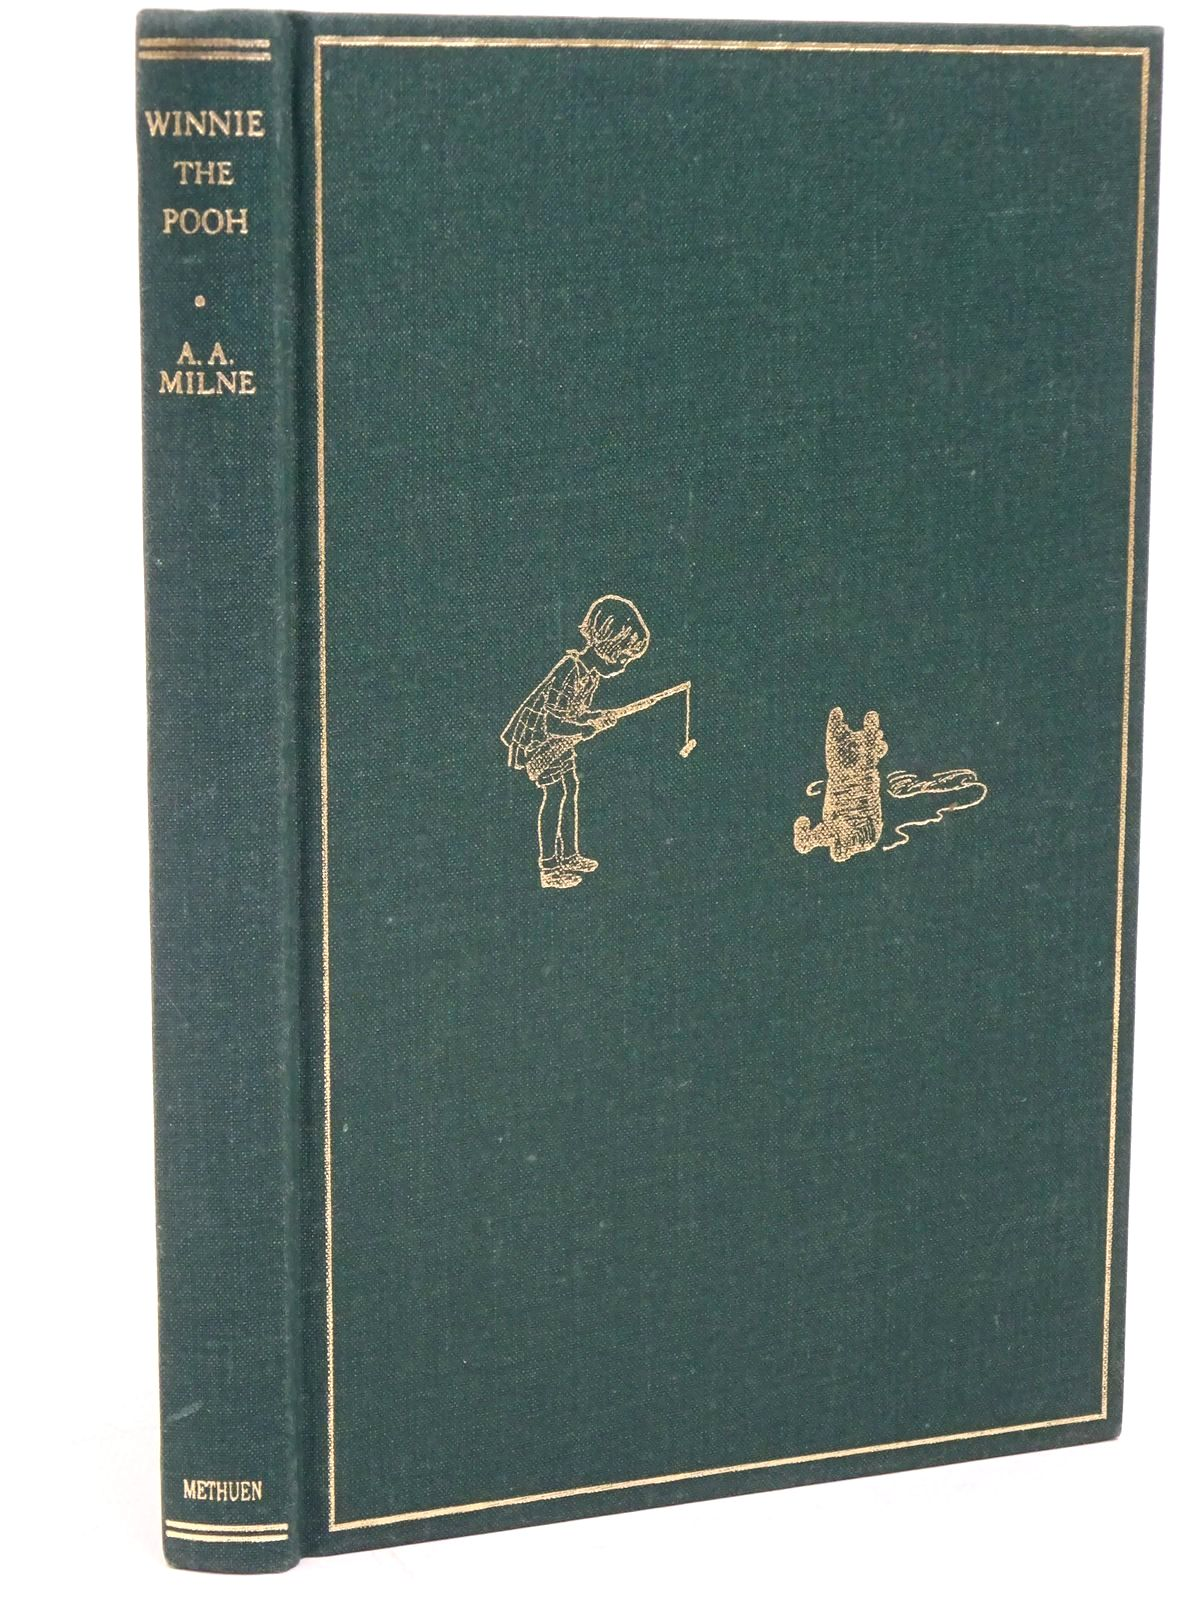 Photo of WINNIE-THE-POOH written by Milne, A.A. illustrated by Shepard, E.H. published by Methuen Children's Books (STOCK CODE: 1317807)  for sale by Stella & Rose's Books